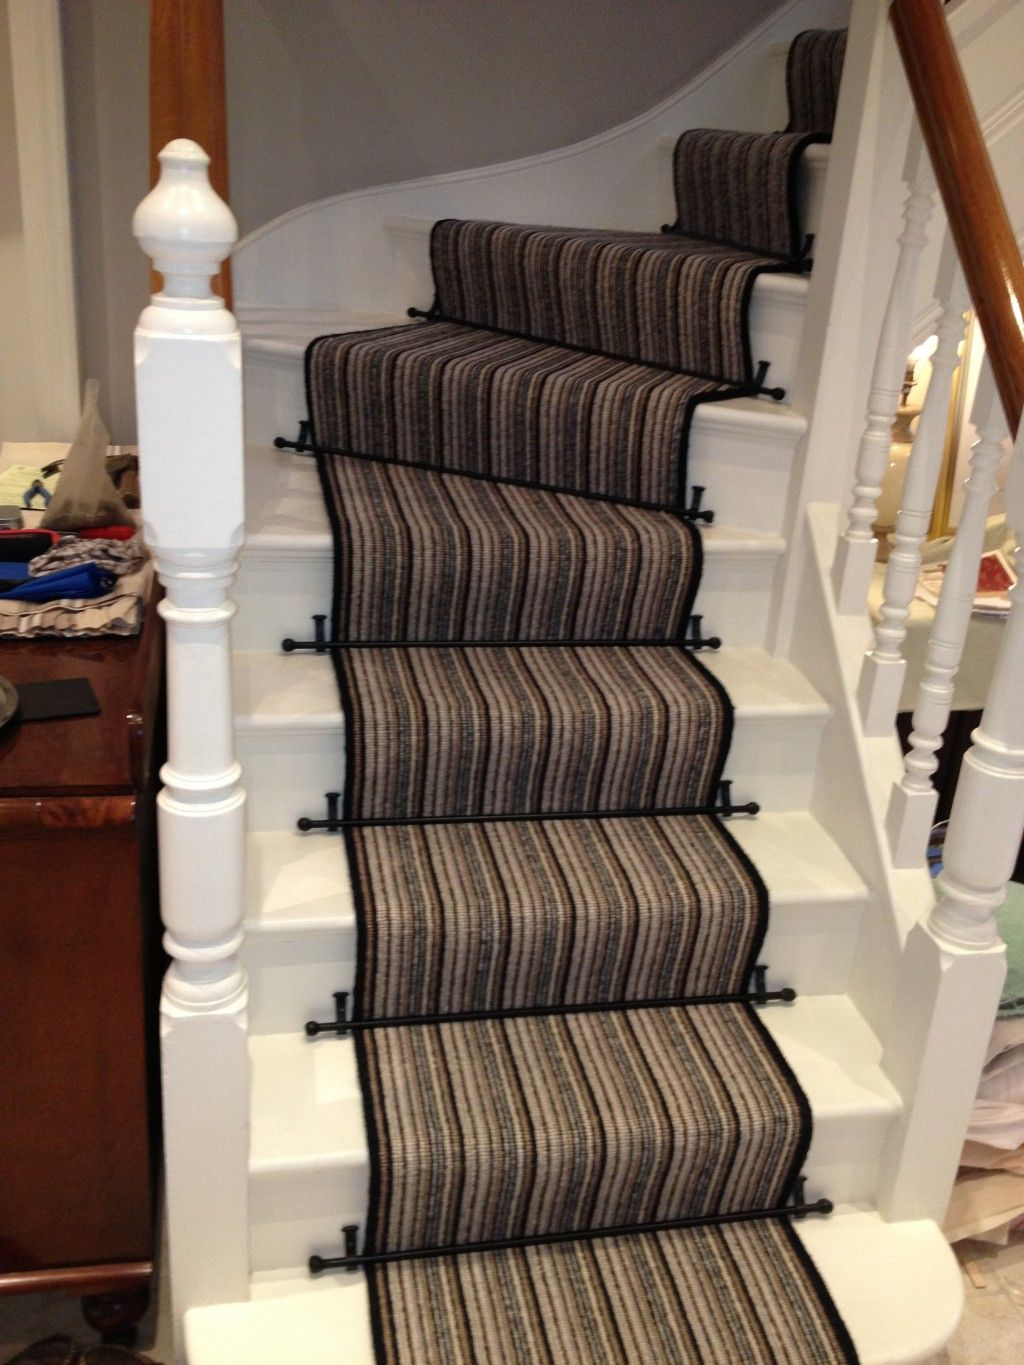 Genial Minimalist Striped Runners For Stairs With Nice Dark Bronze Carpet Runner  Stair Rod Ideas